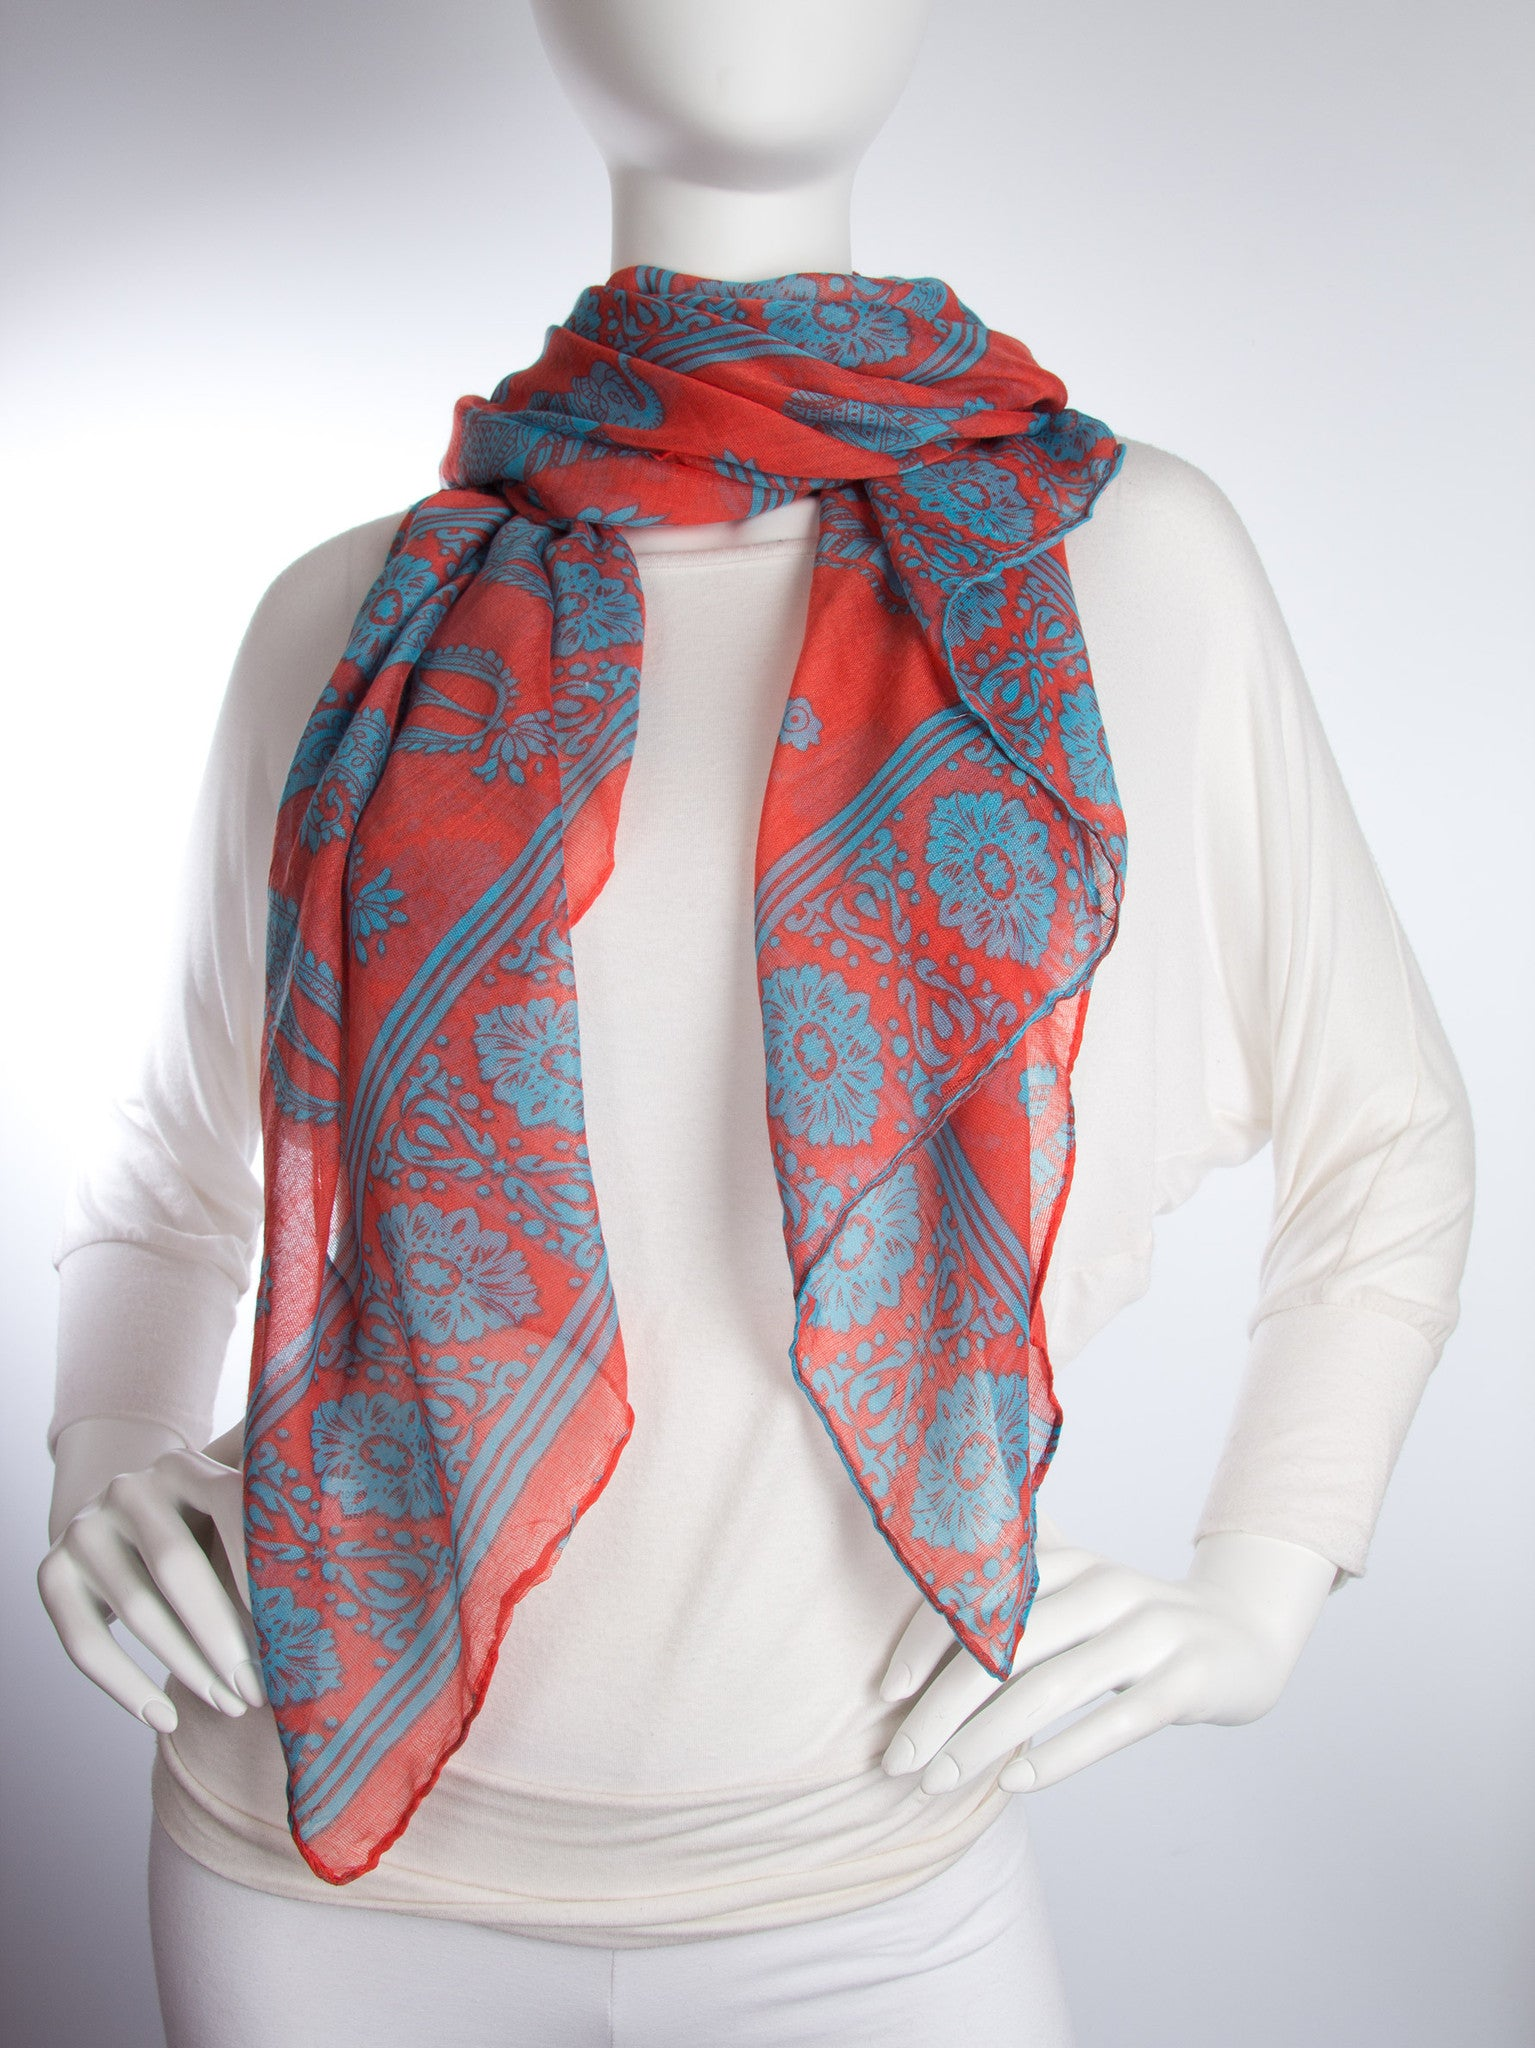 Scarves - Gaja Shawl, Paisley Indian Elephant Print Scarf, Shawl, Beach Wrap -() Bohomonde  - 10